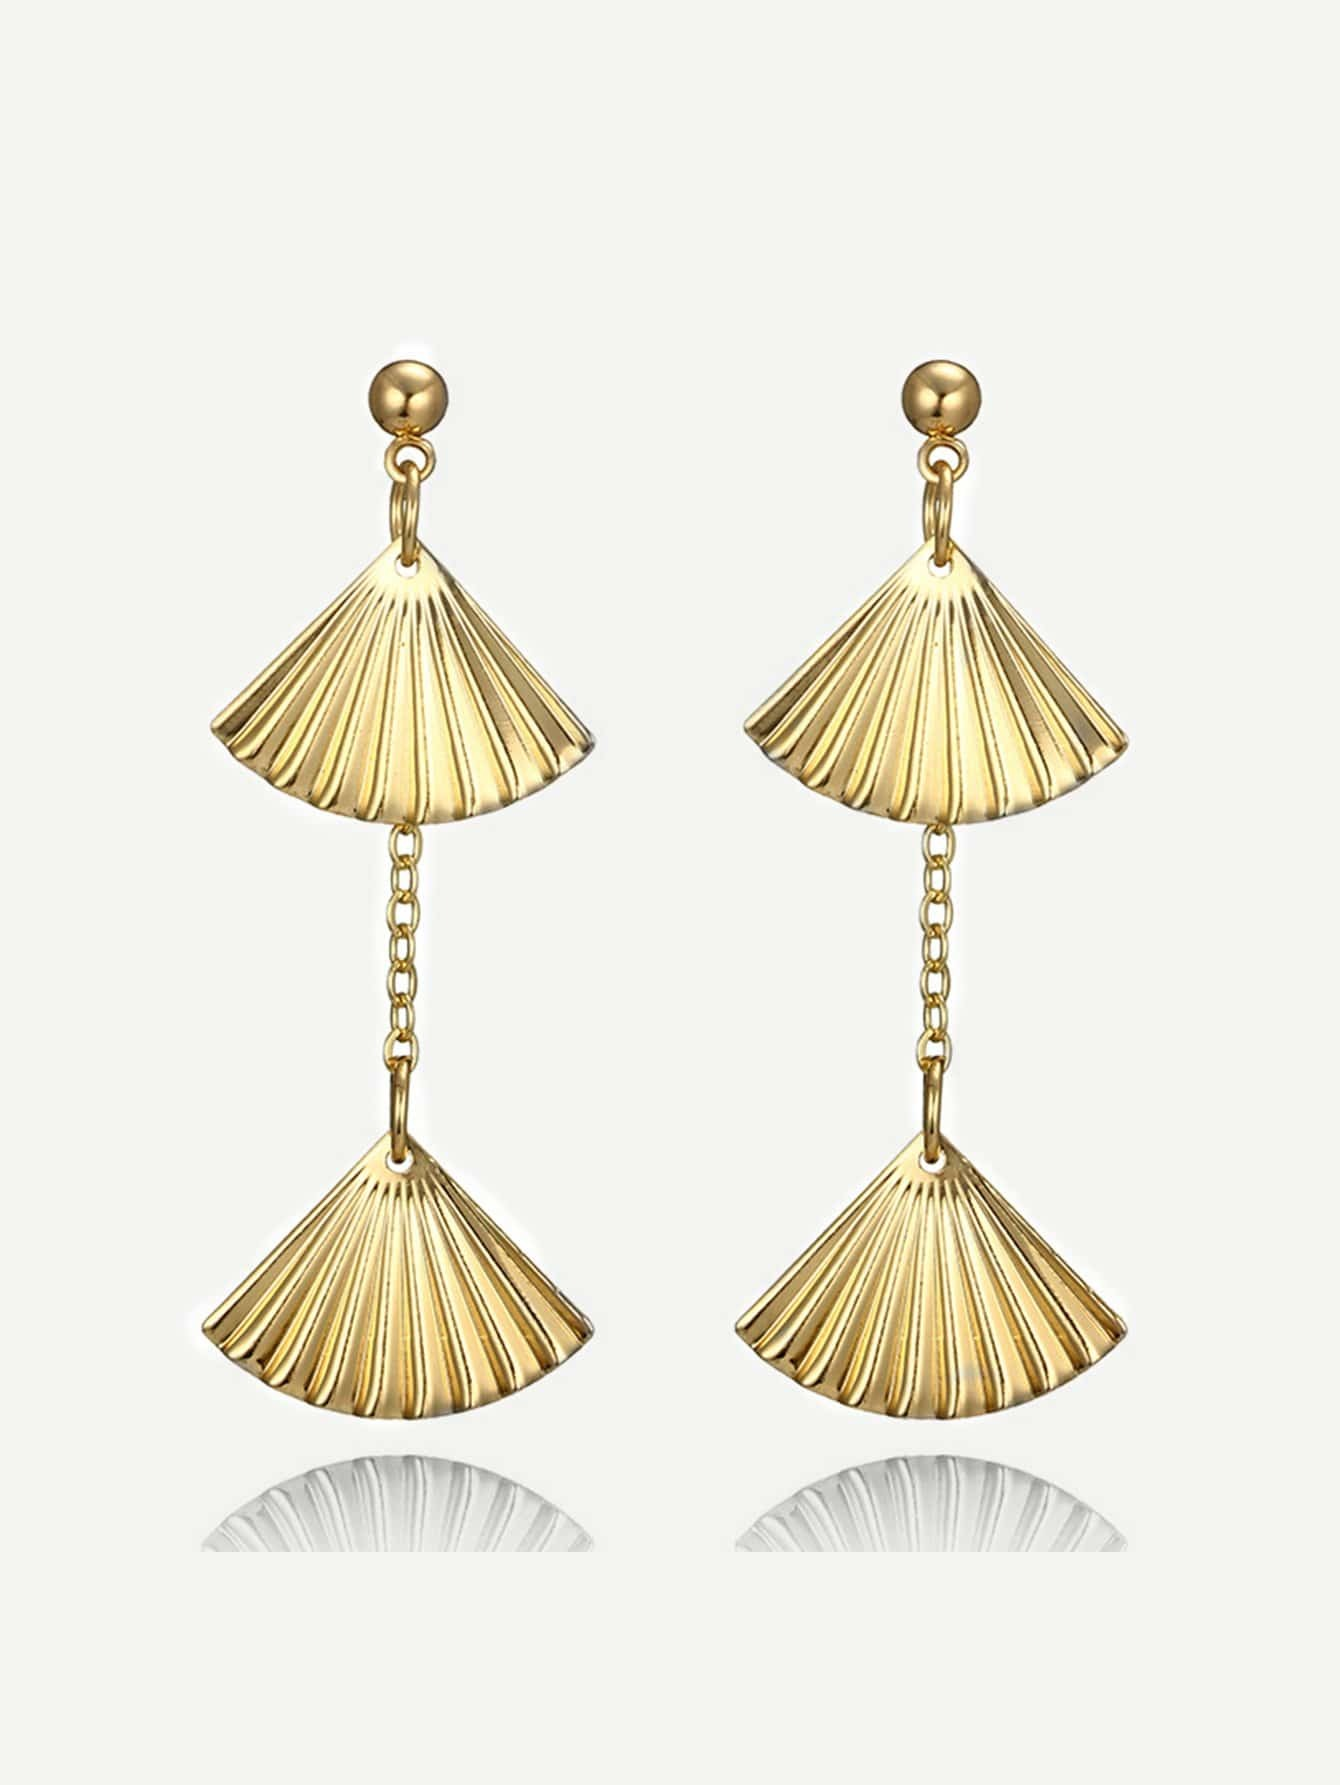 Fan Shaped Drop Earrings hollow water drop shaped drop earrings